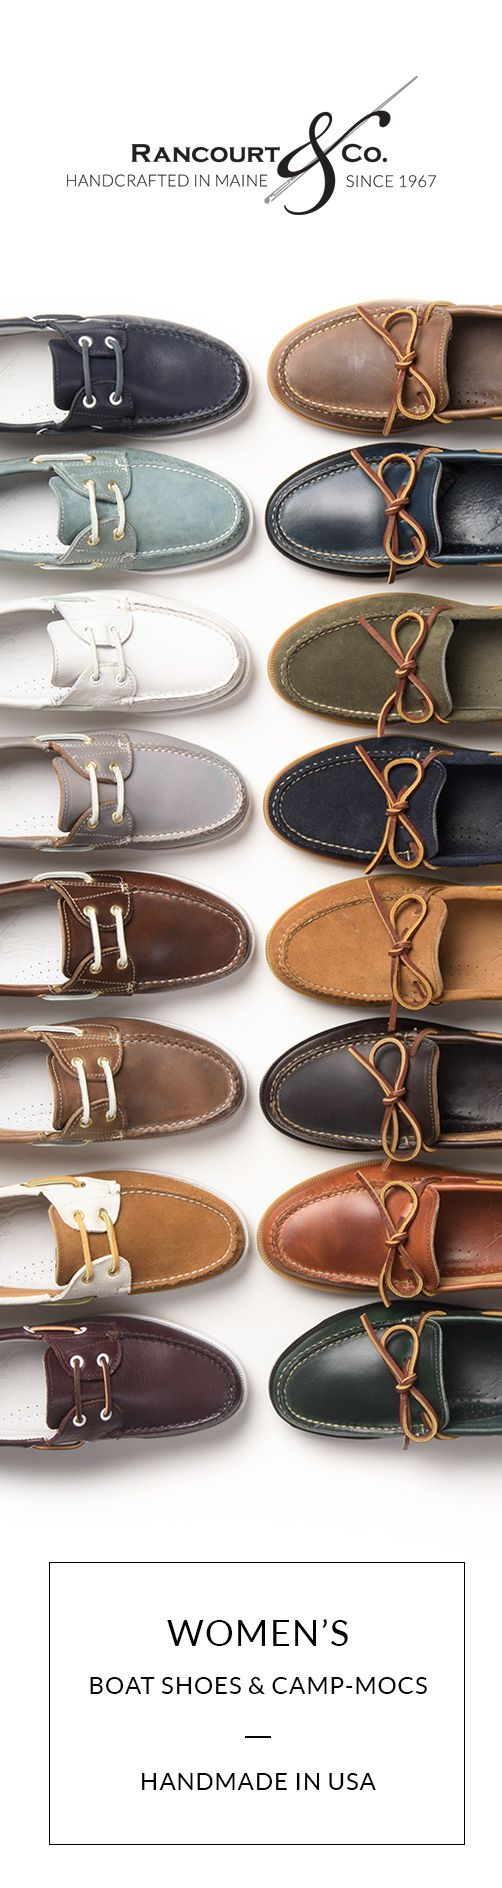 Ladies Boat Shoes and Camp Mocs Handmade in USA